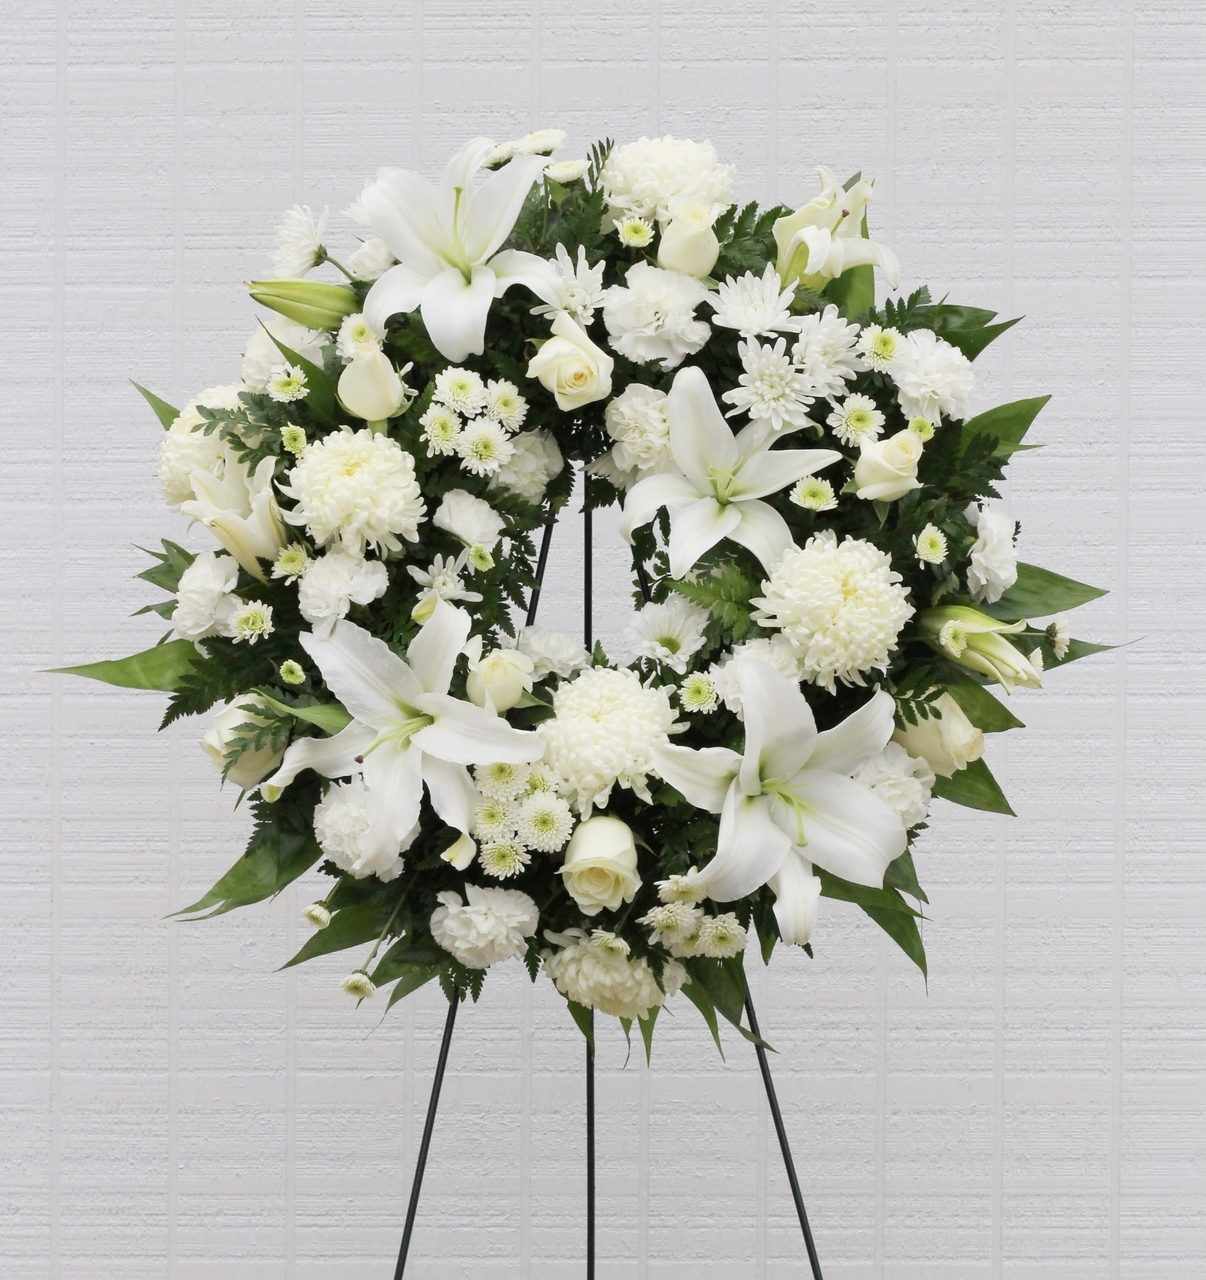 Funeral Flower Delivery, Wages & Sons Funeral Home